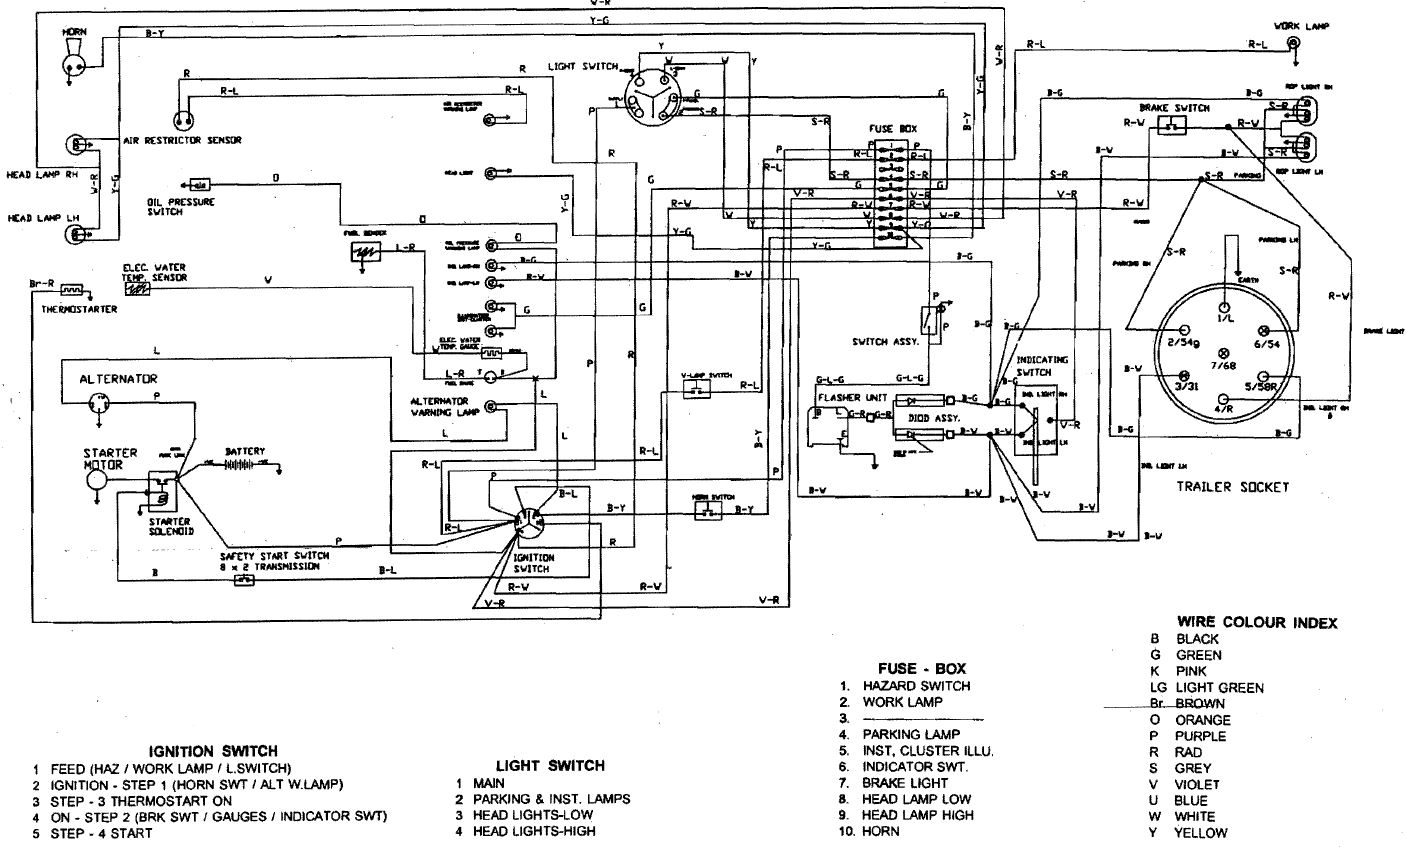 20158463319_b82d524c3d_o ignition switch wiring diagram john deere 318 ignition switch wiring diagram at fashall.co